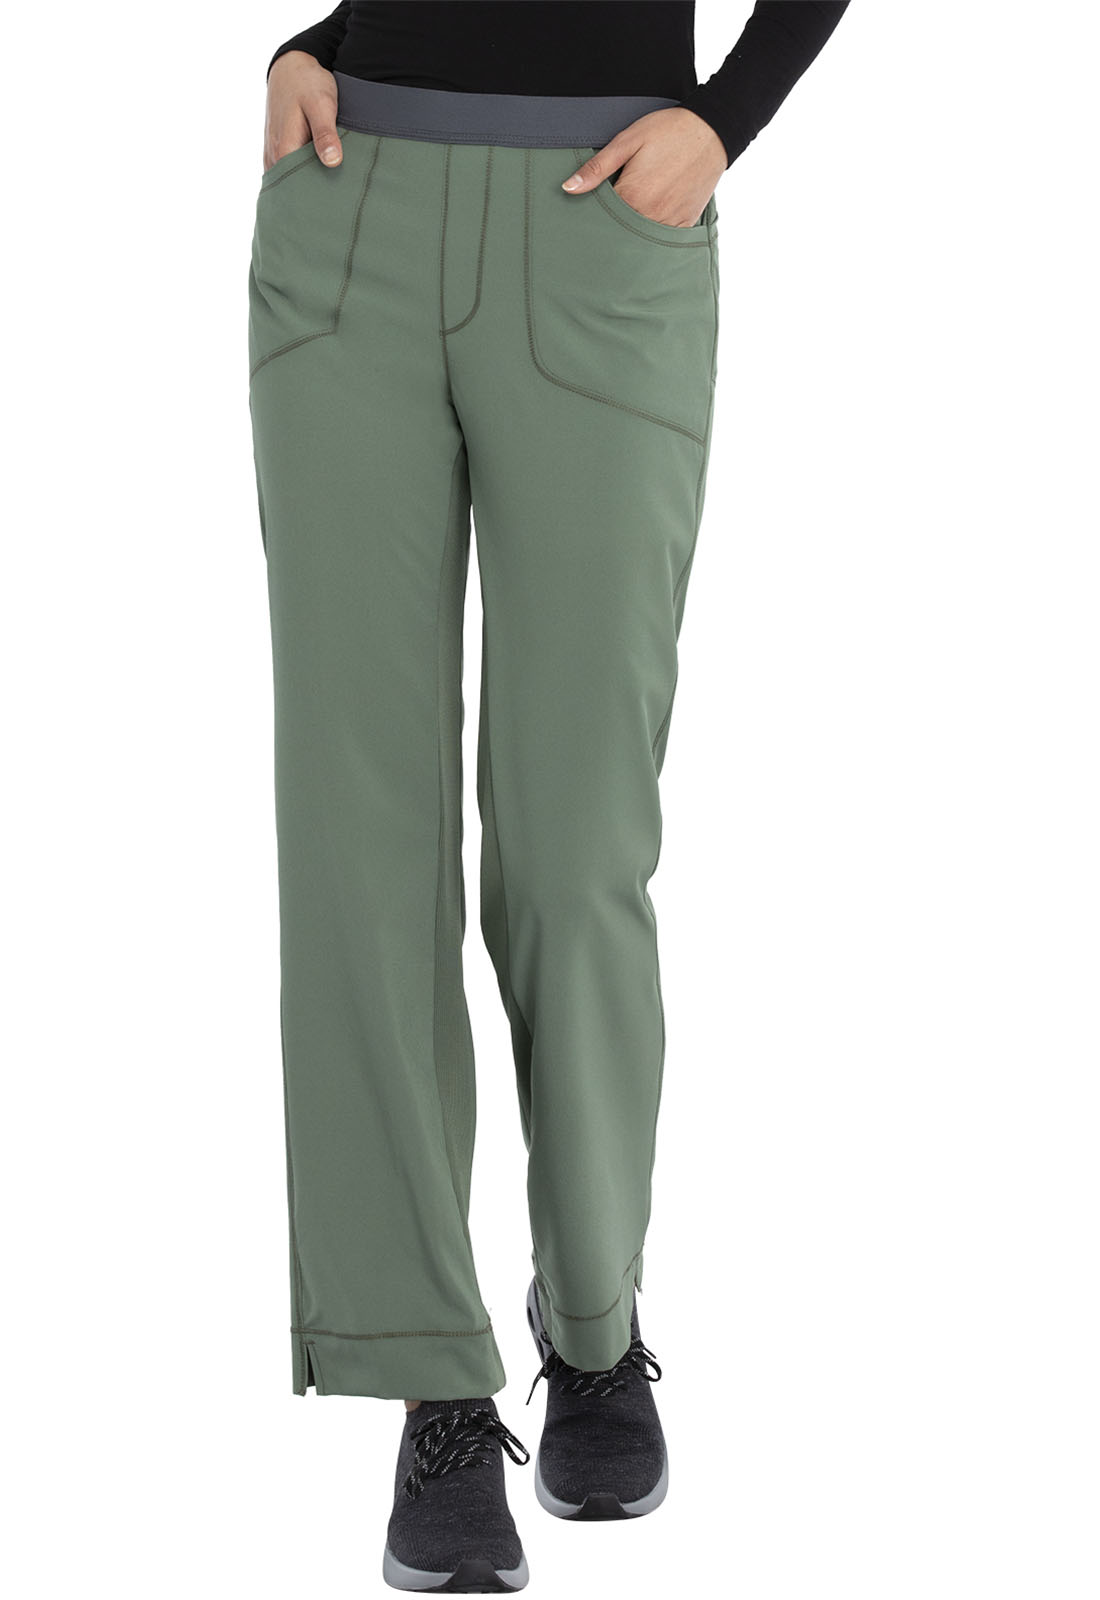 2c1eb9b7868 Infinity Low Rise Slim Pull-On Pant in Olive 1124AP-OLPS from Scrubs ...